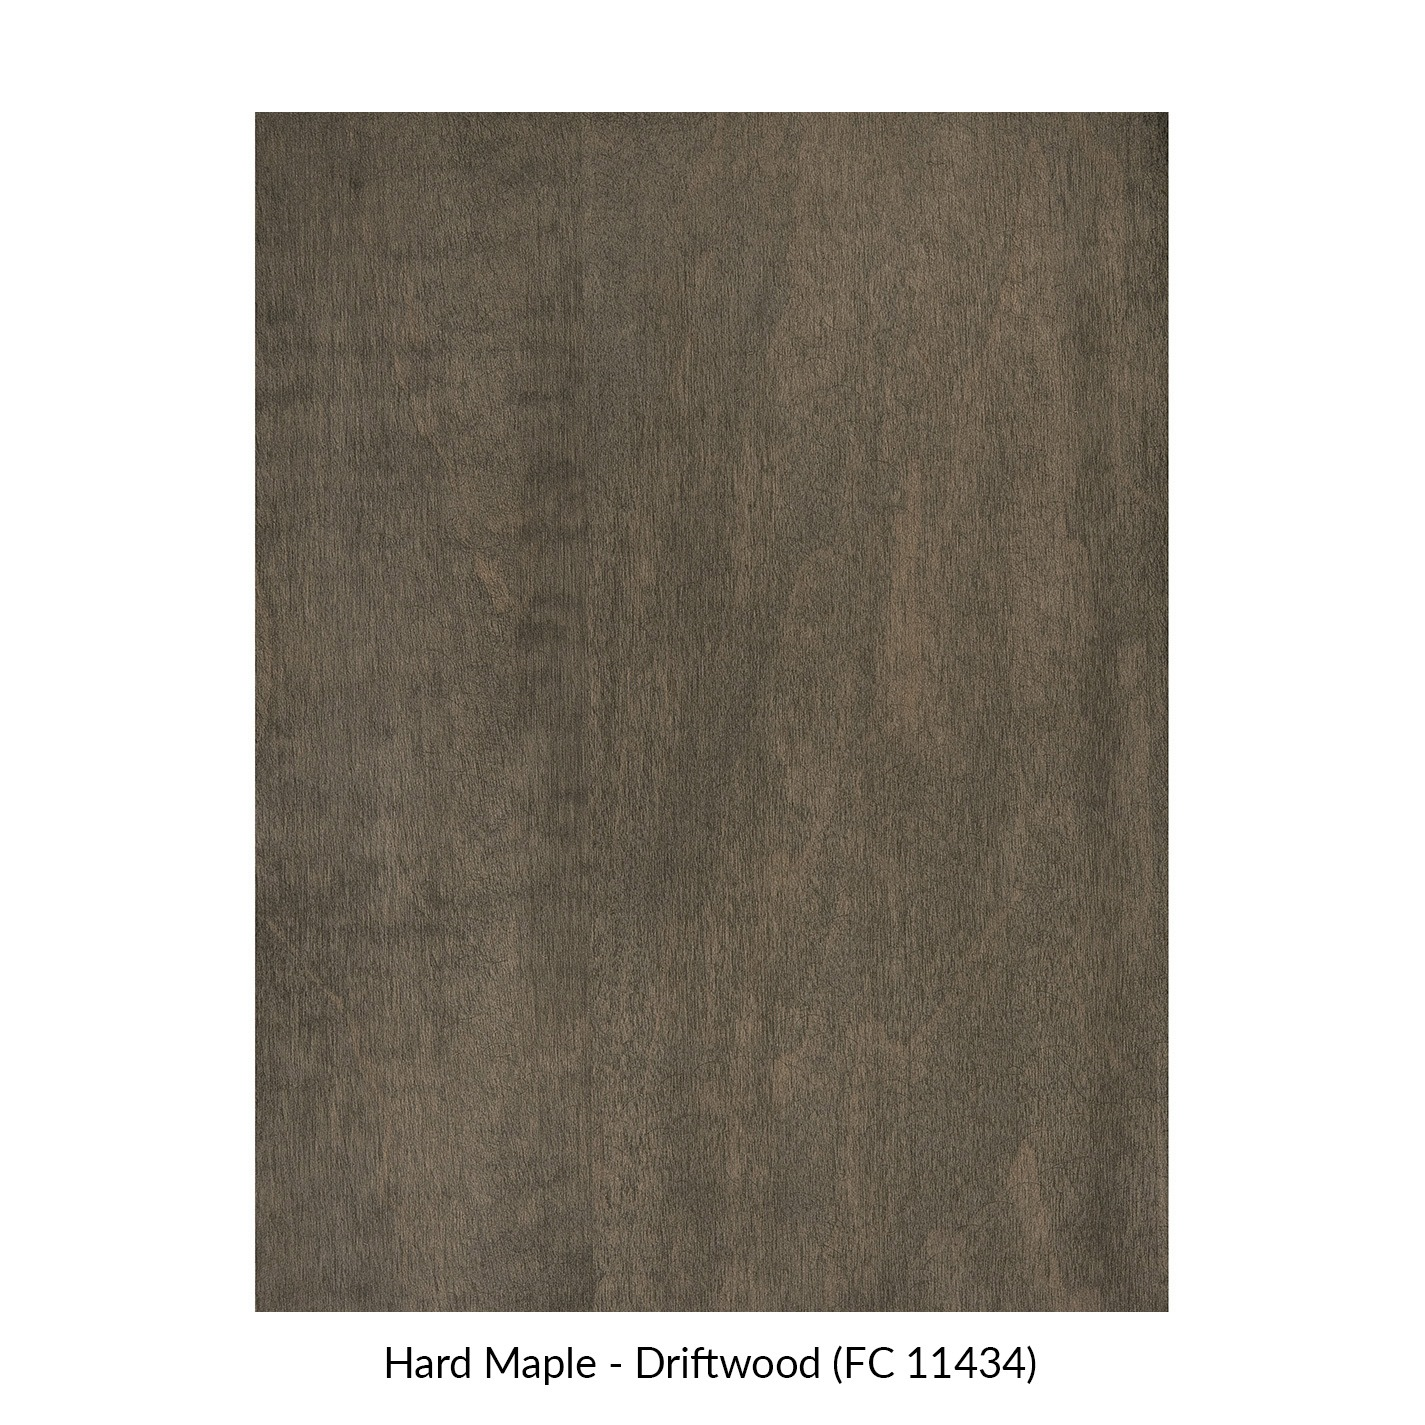 spectrum-hard-maple-driftwood-fc-11434.jpg